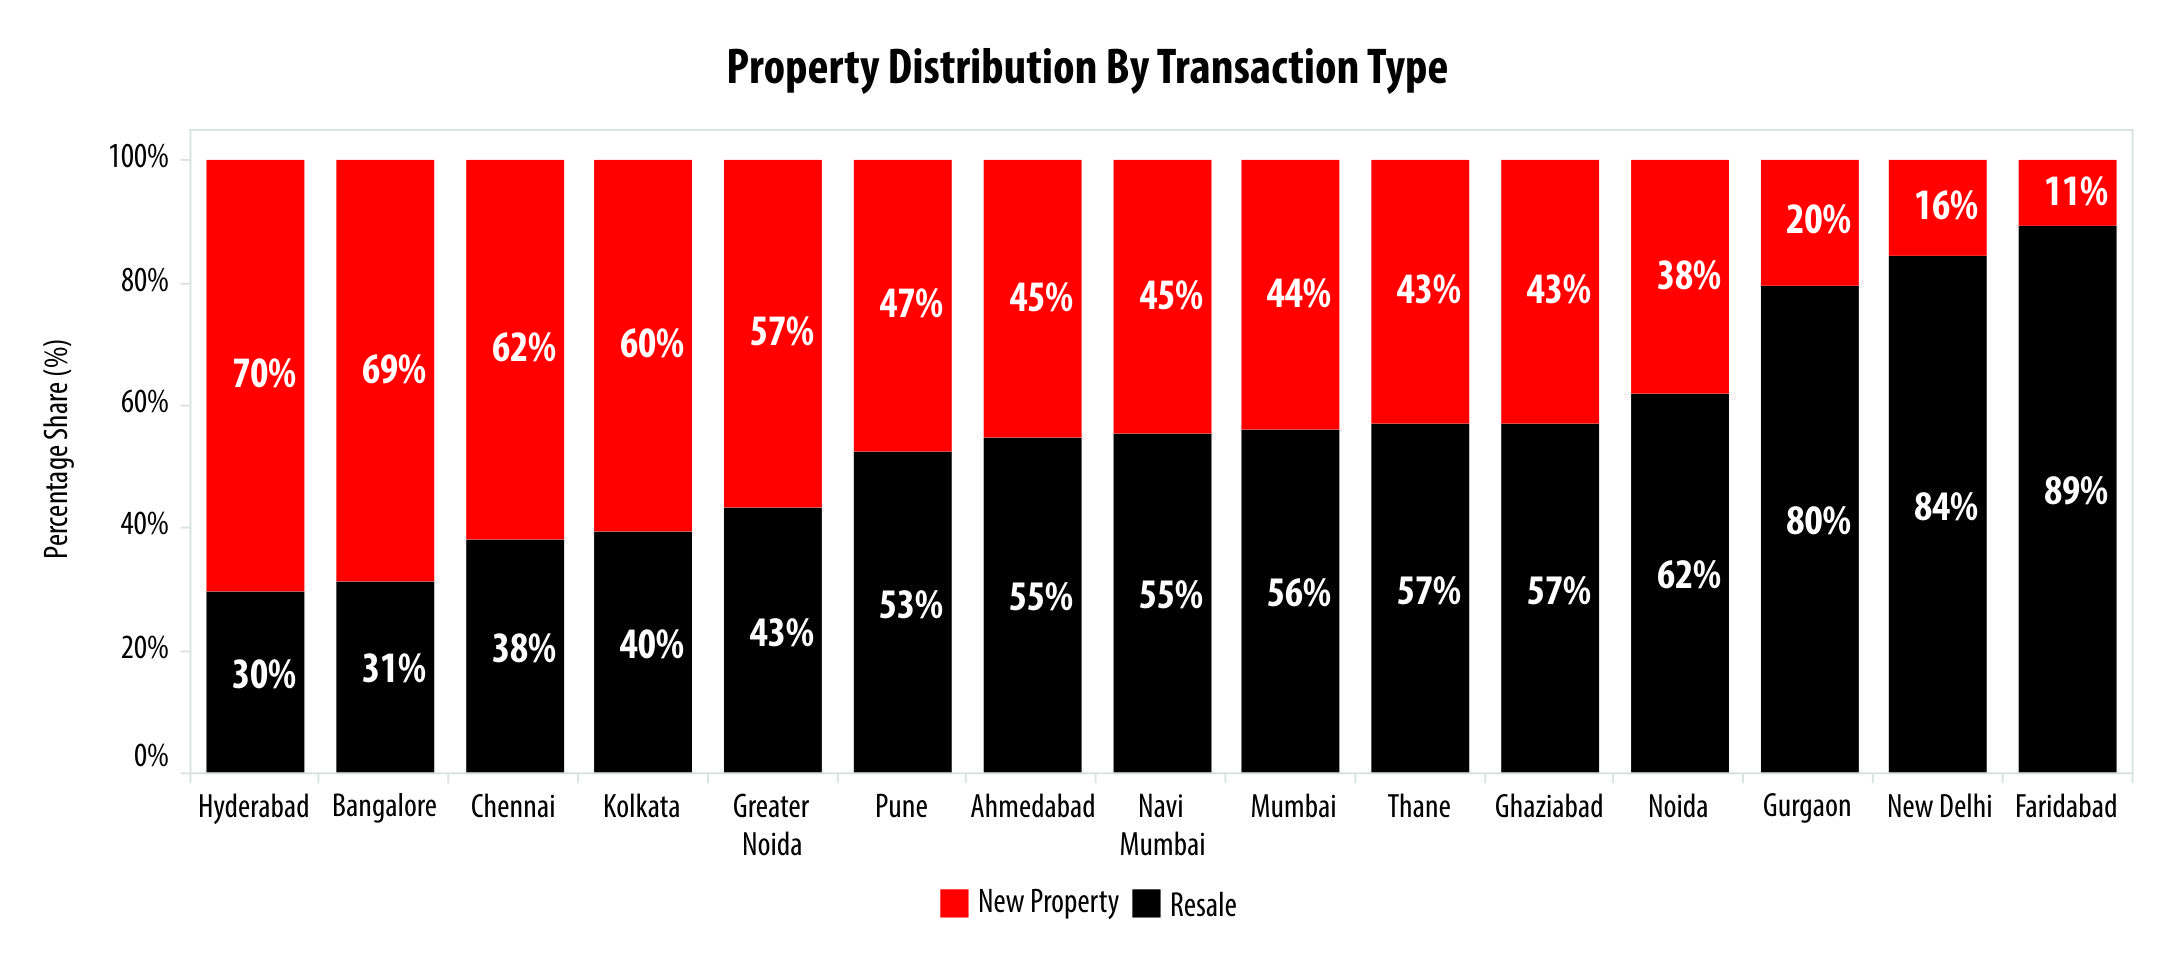 The story of India's real estate resale market